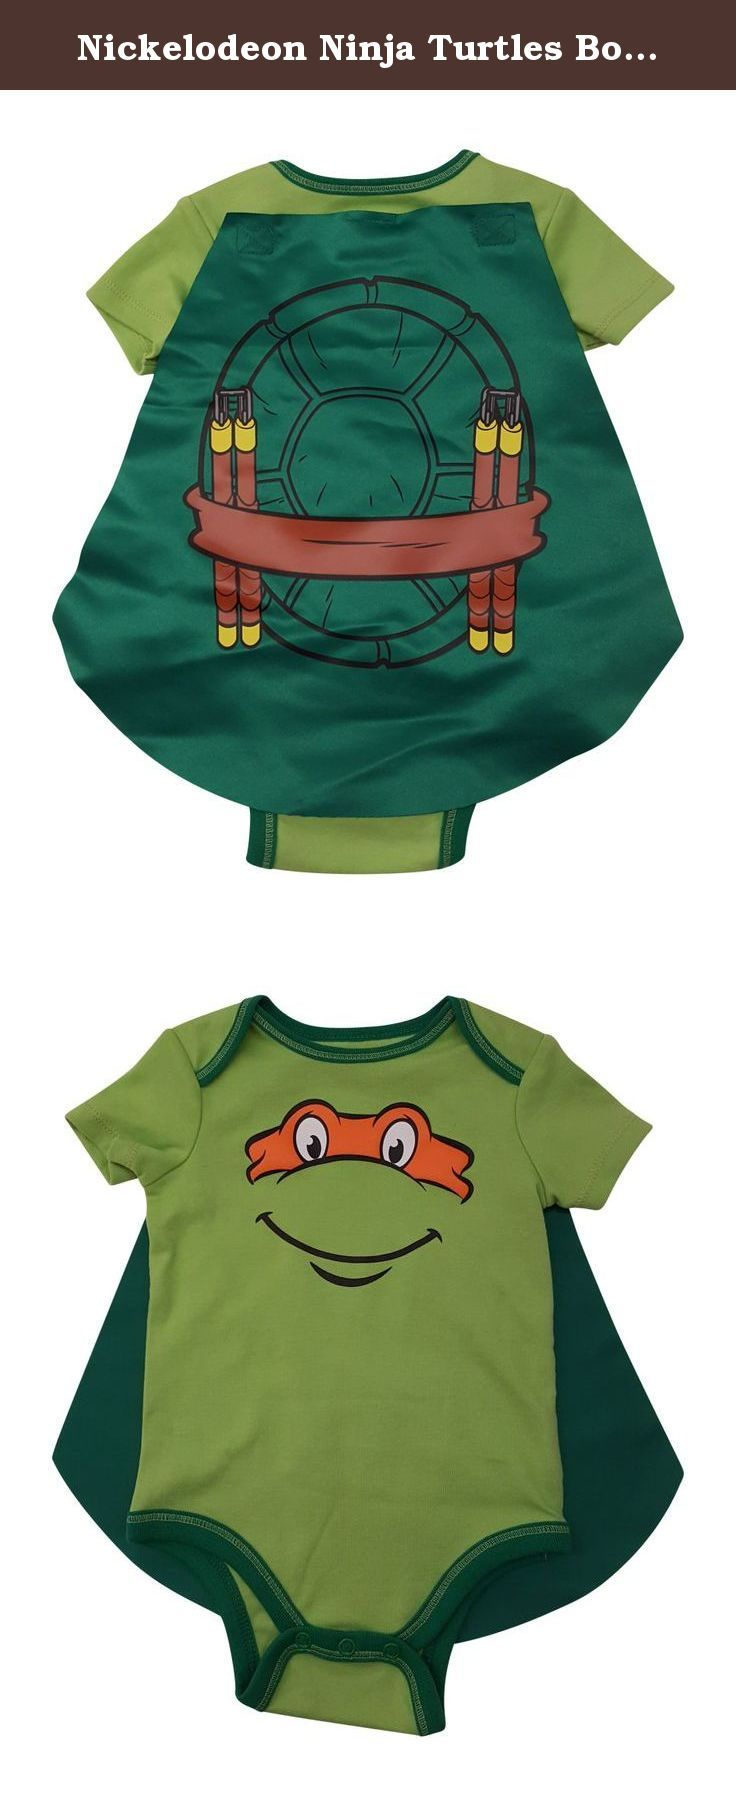 Nickelodeon Ninja Turtles Bodysuit with Cape (0/9months) (0/3 months). 100% Cotton. Machine Wash. Detachable cape.